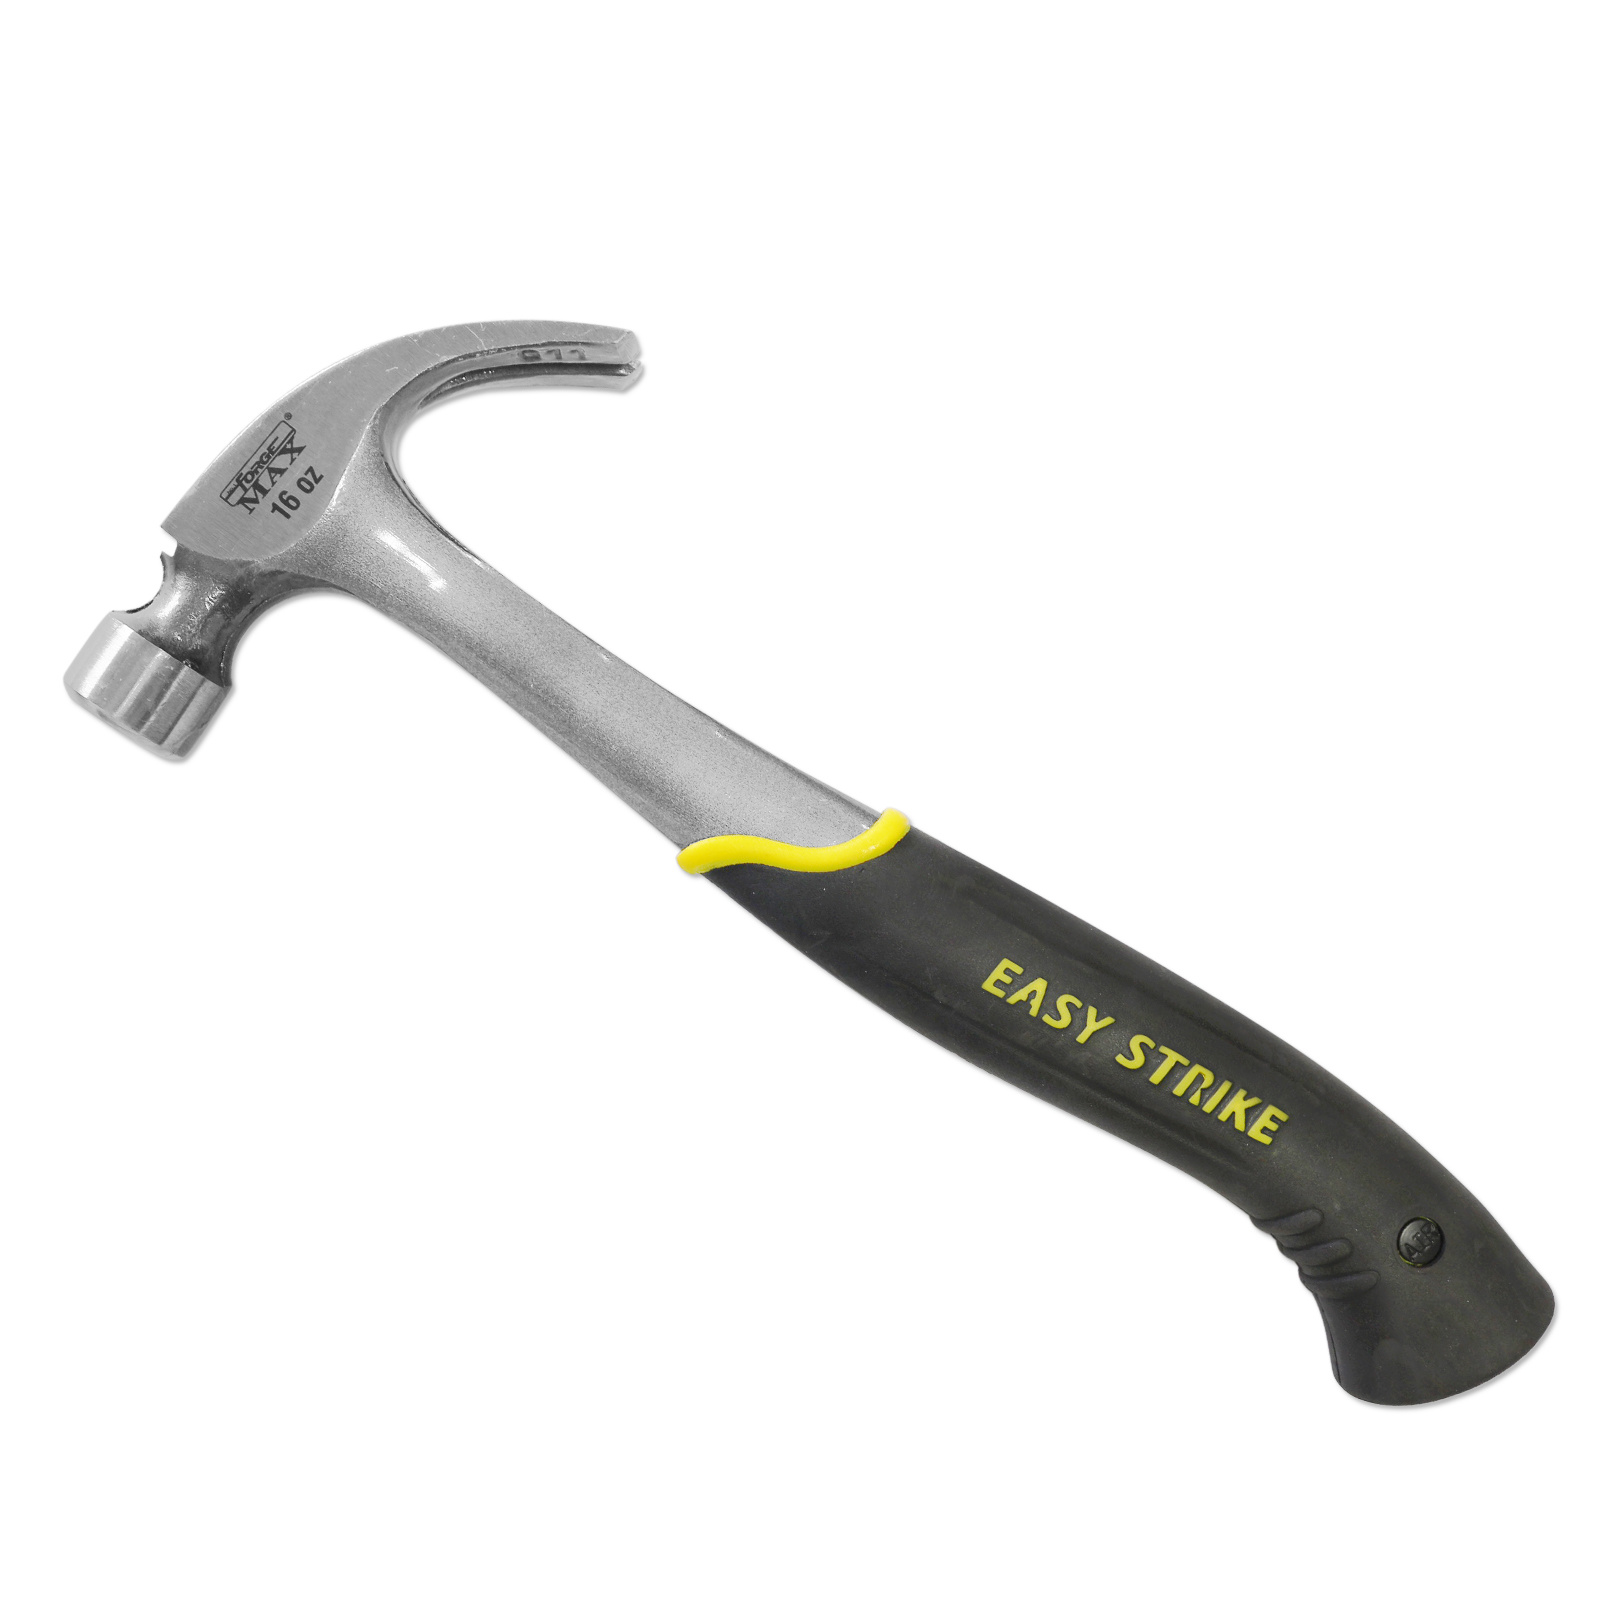 16oz Forged One-Piece Nail Hammer Claw Hammer with Magnetic Nail Holder